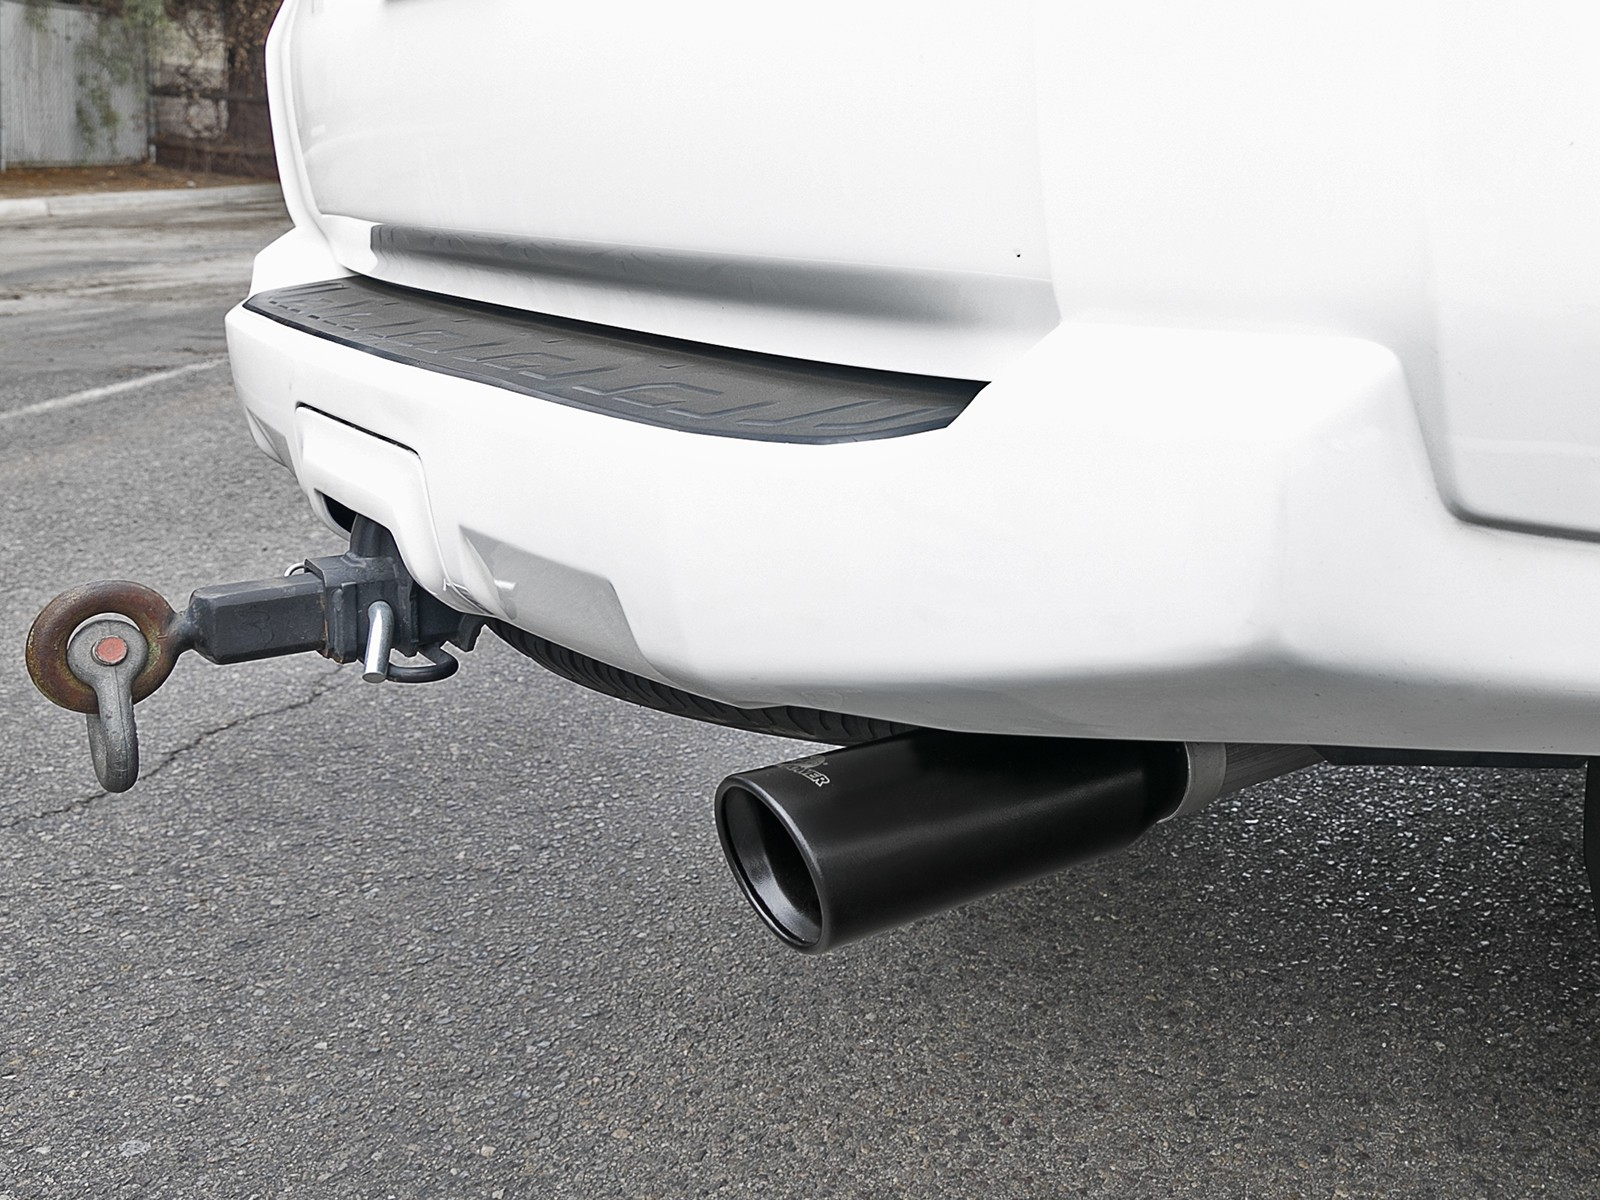 AFE MACH Force-Xp Stainless Steel Exhaust System